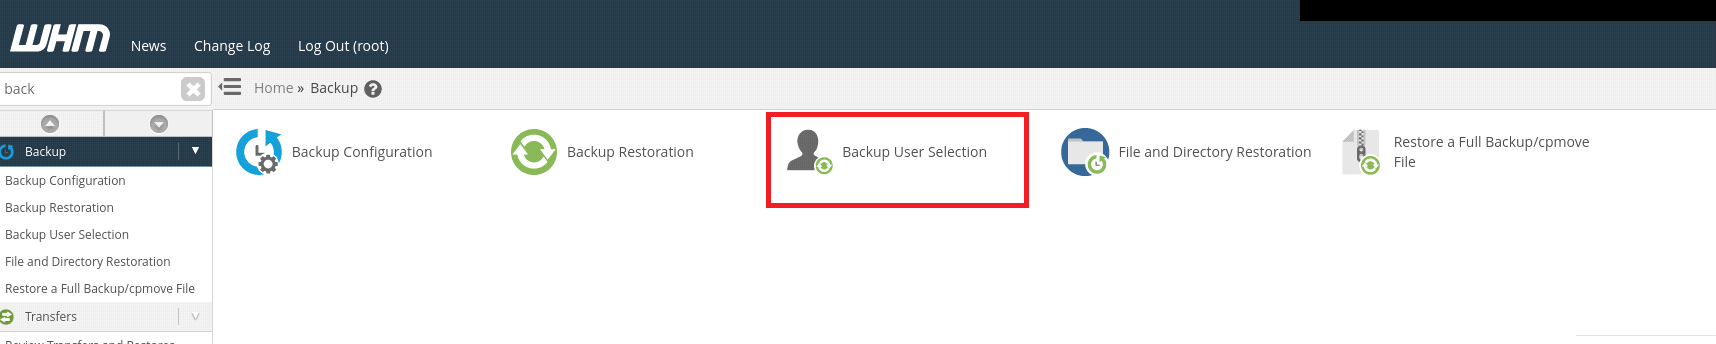 New cPanel feature - Backup User Selection